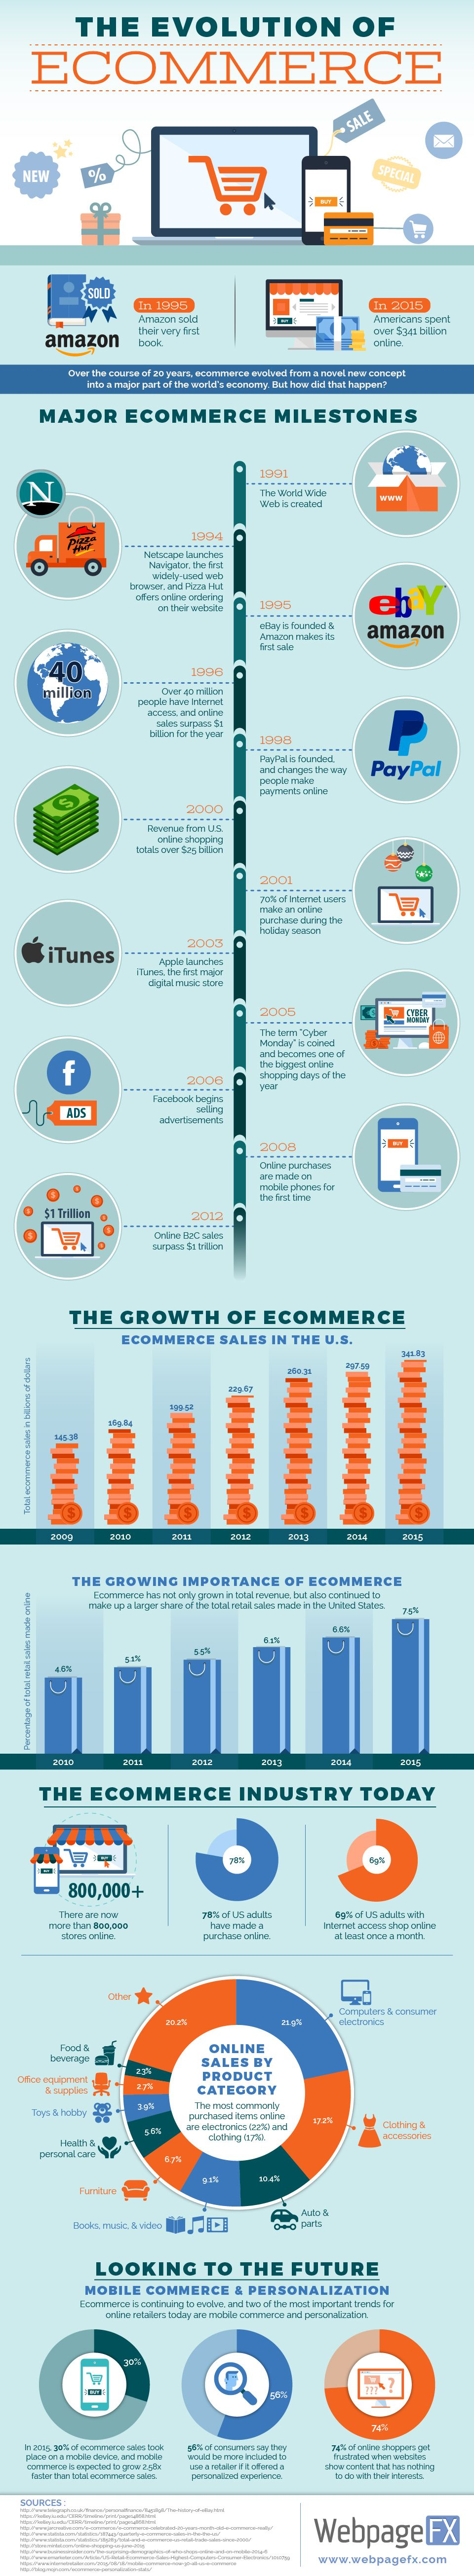 The Evolution of Ecommerce #Infographic